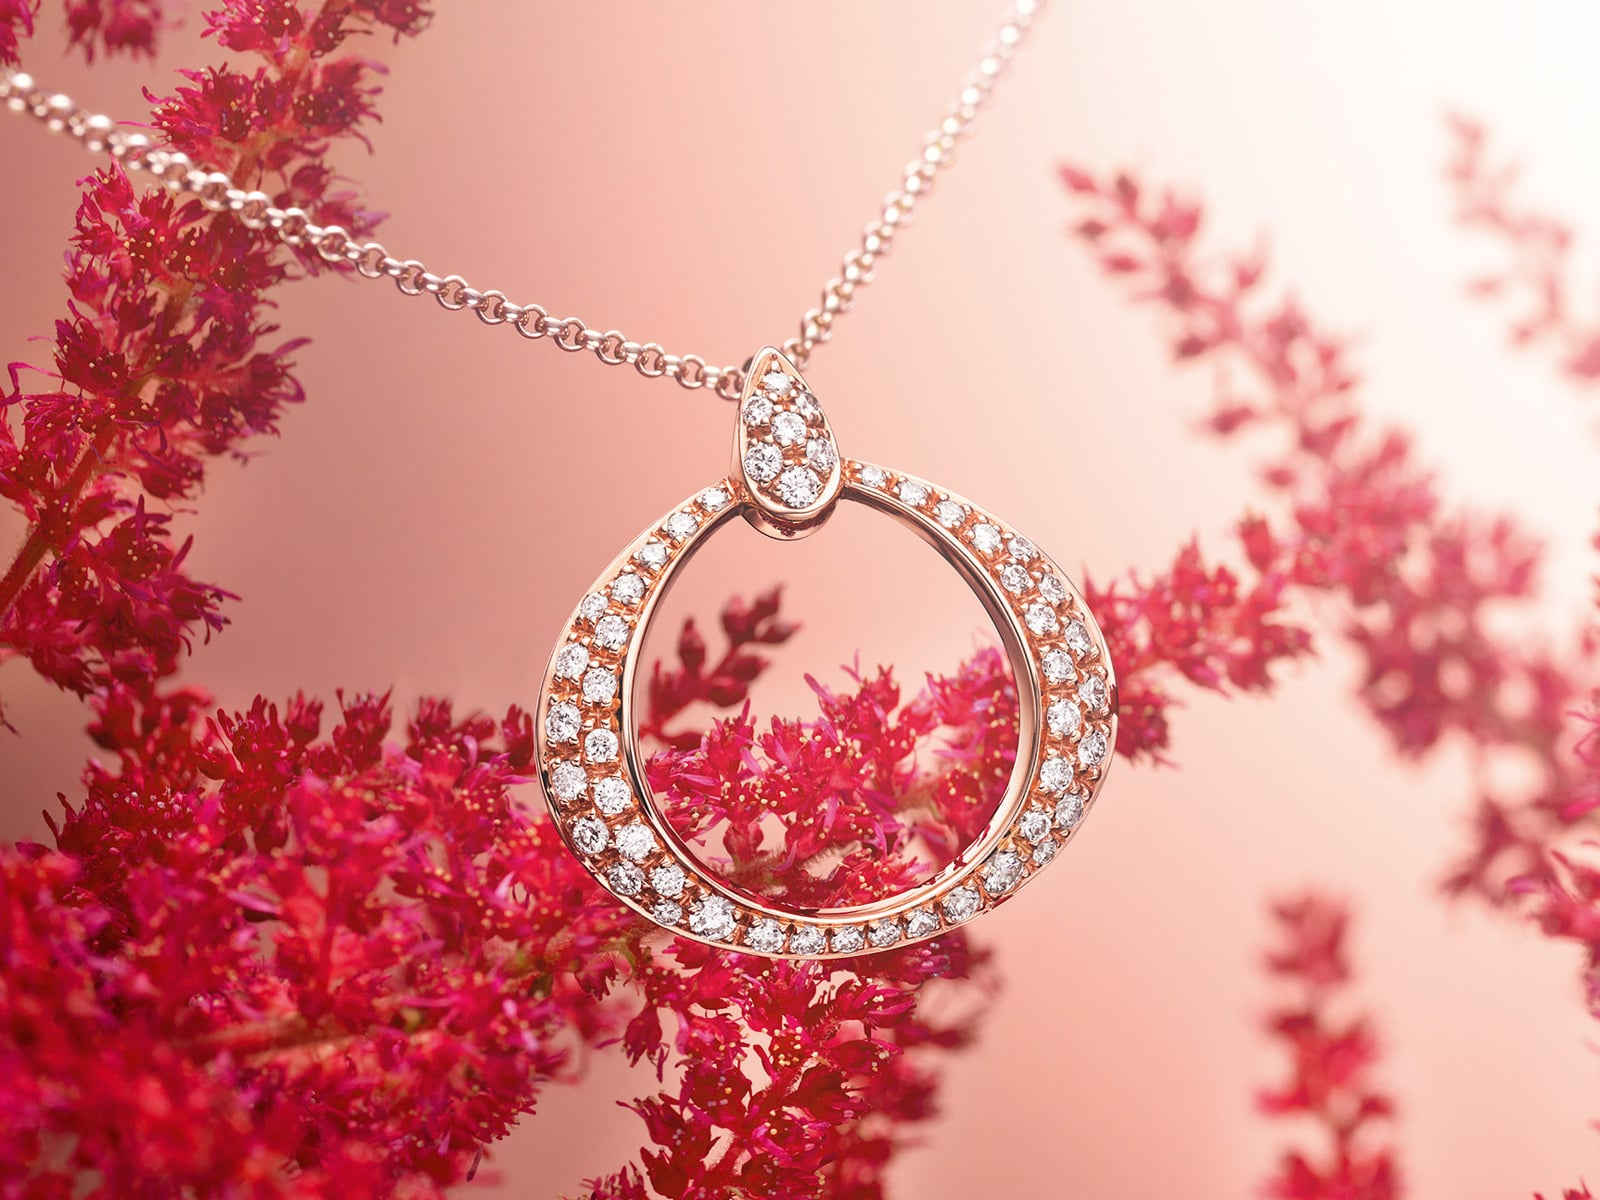 THE OMEGA DEWDROP PENDANT